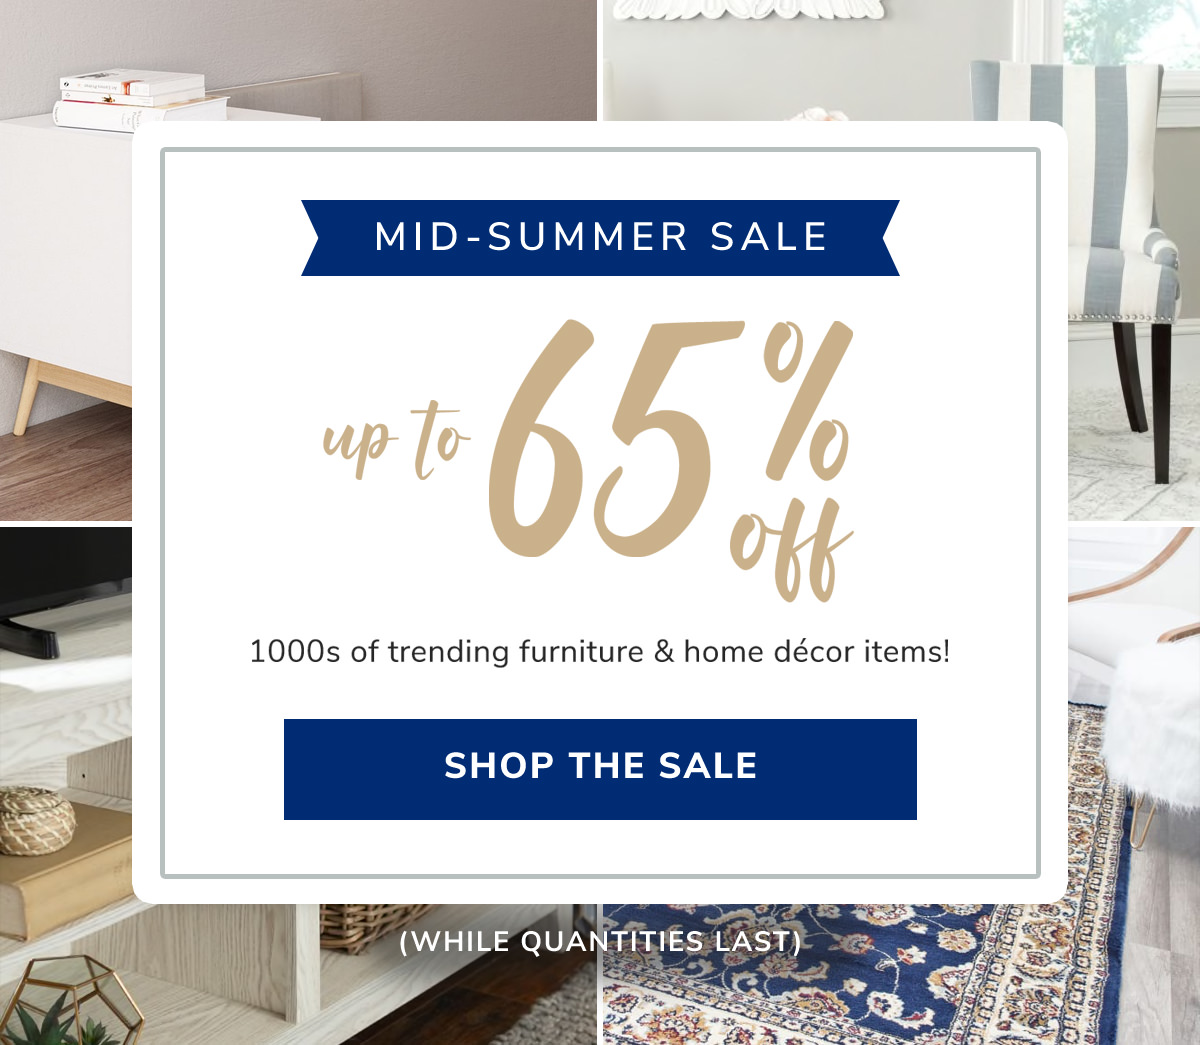 Mid Summer Sale. Up to 65% Off! 1000s of trending furniture & home decor items!